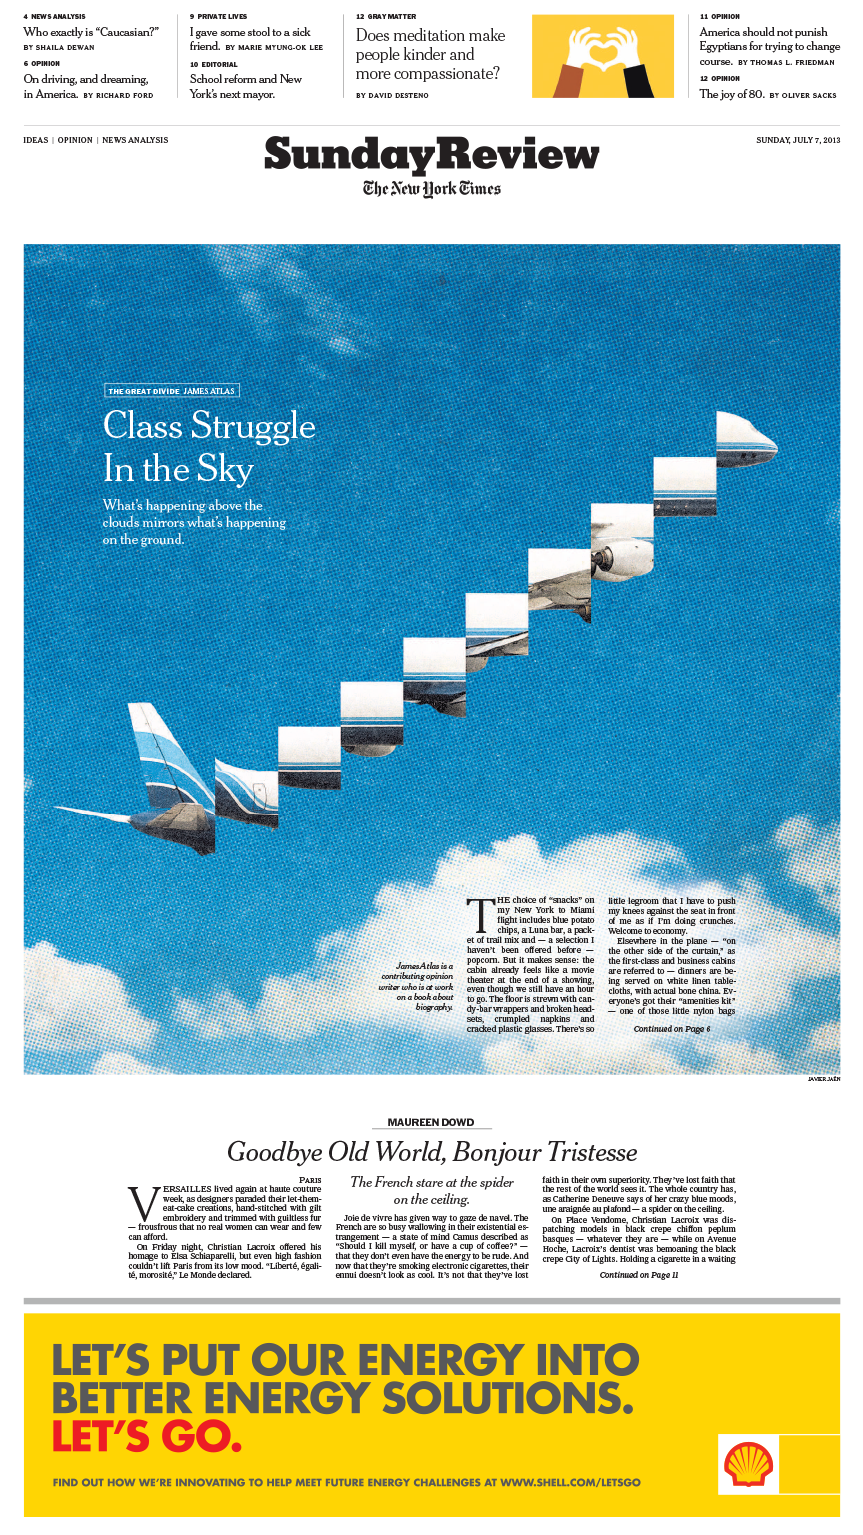 Sunday Review Cover: Class Struggle in the Sky